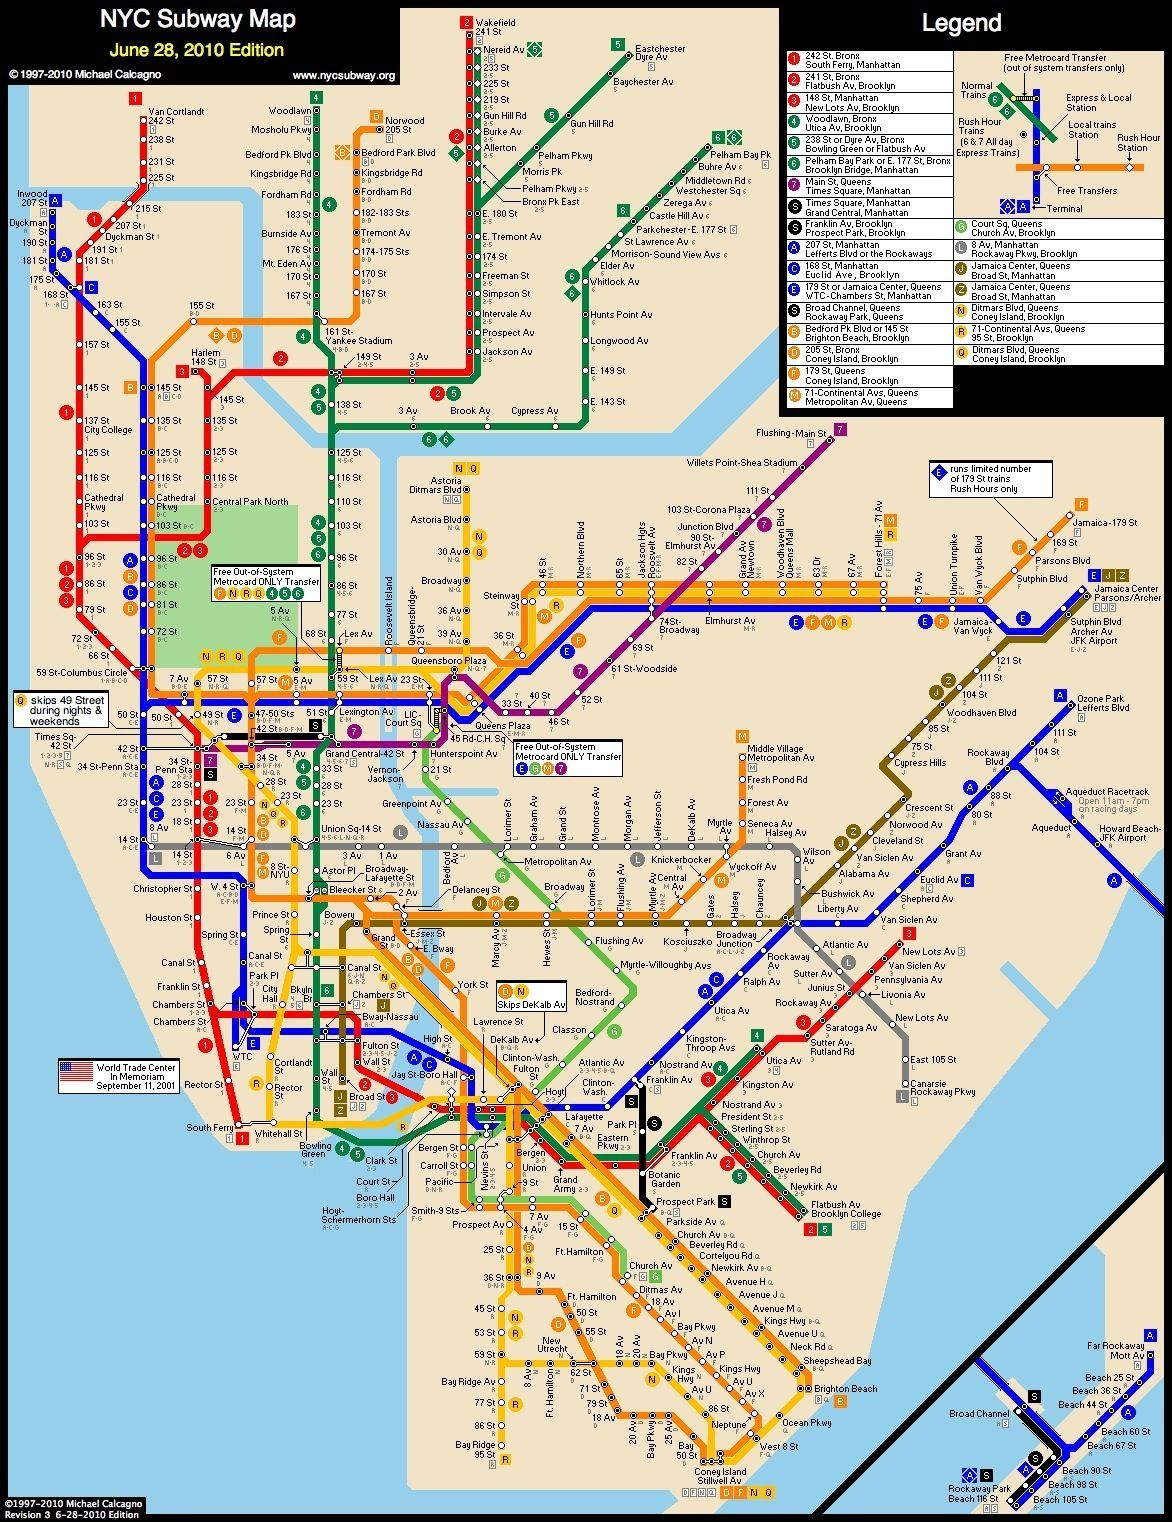 NYC Subway map From Liberty Harbor RV to Columbia stadium: Grove ...